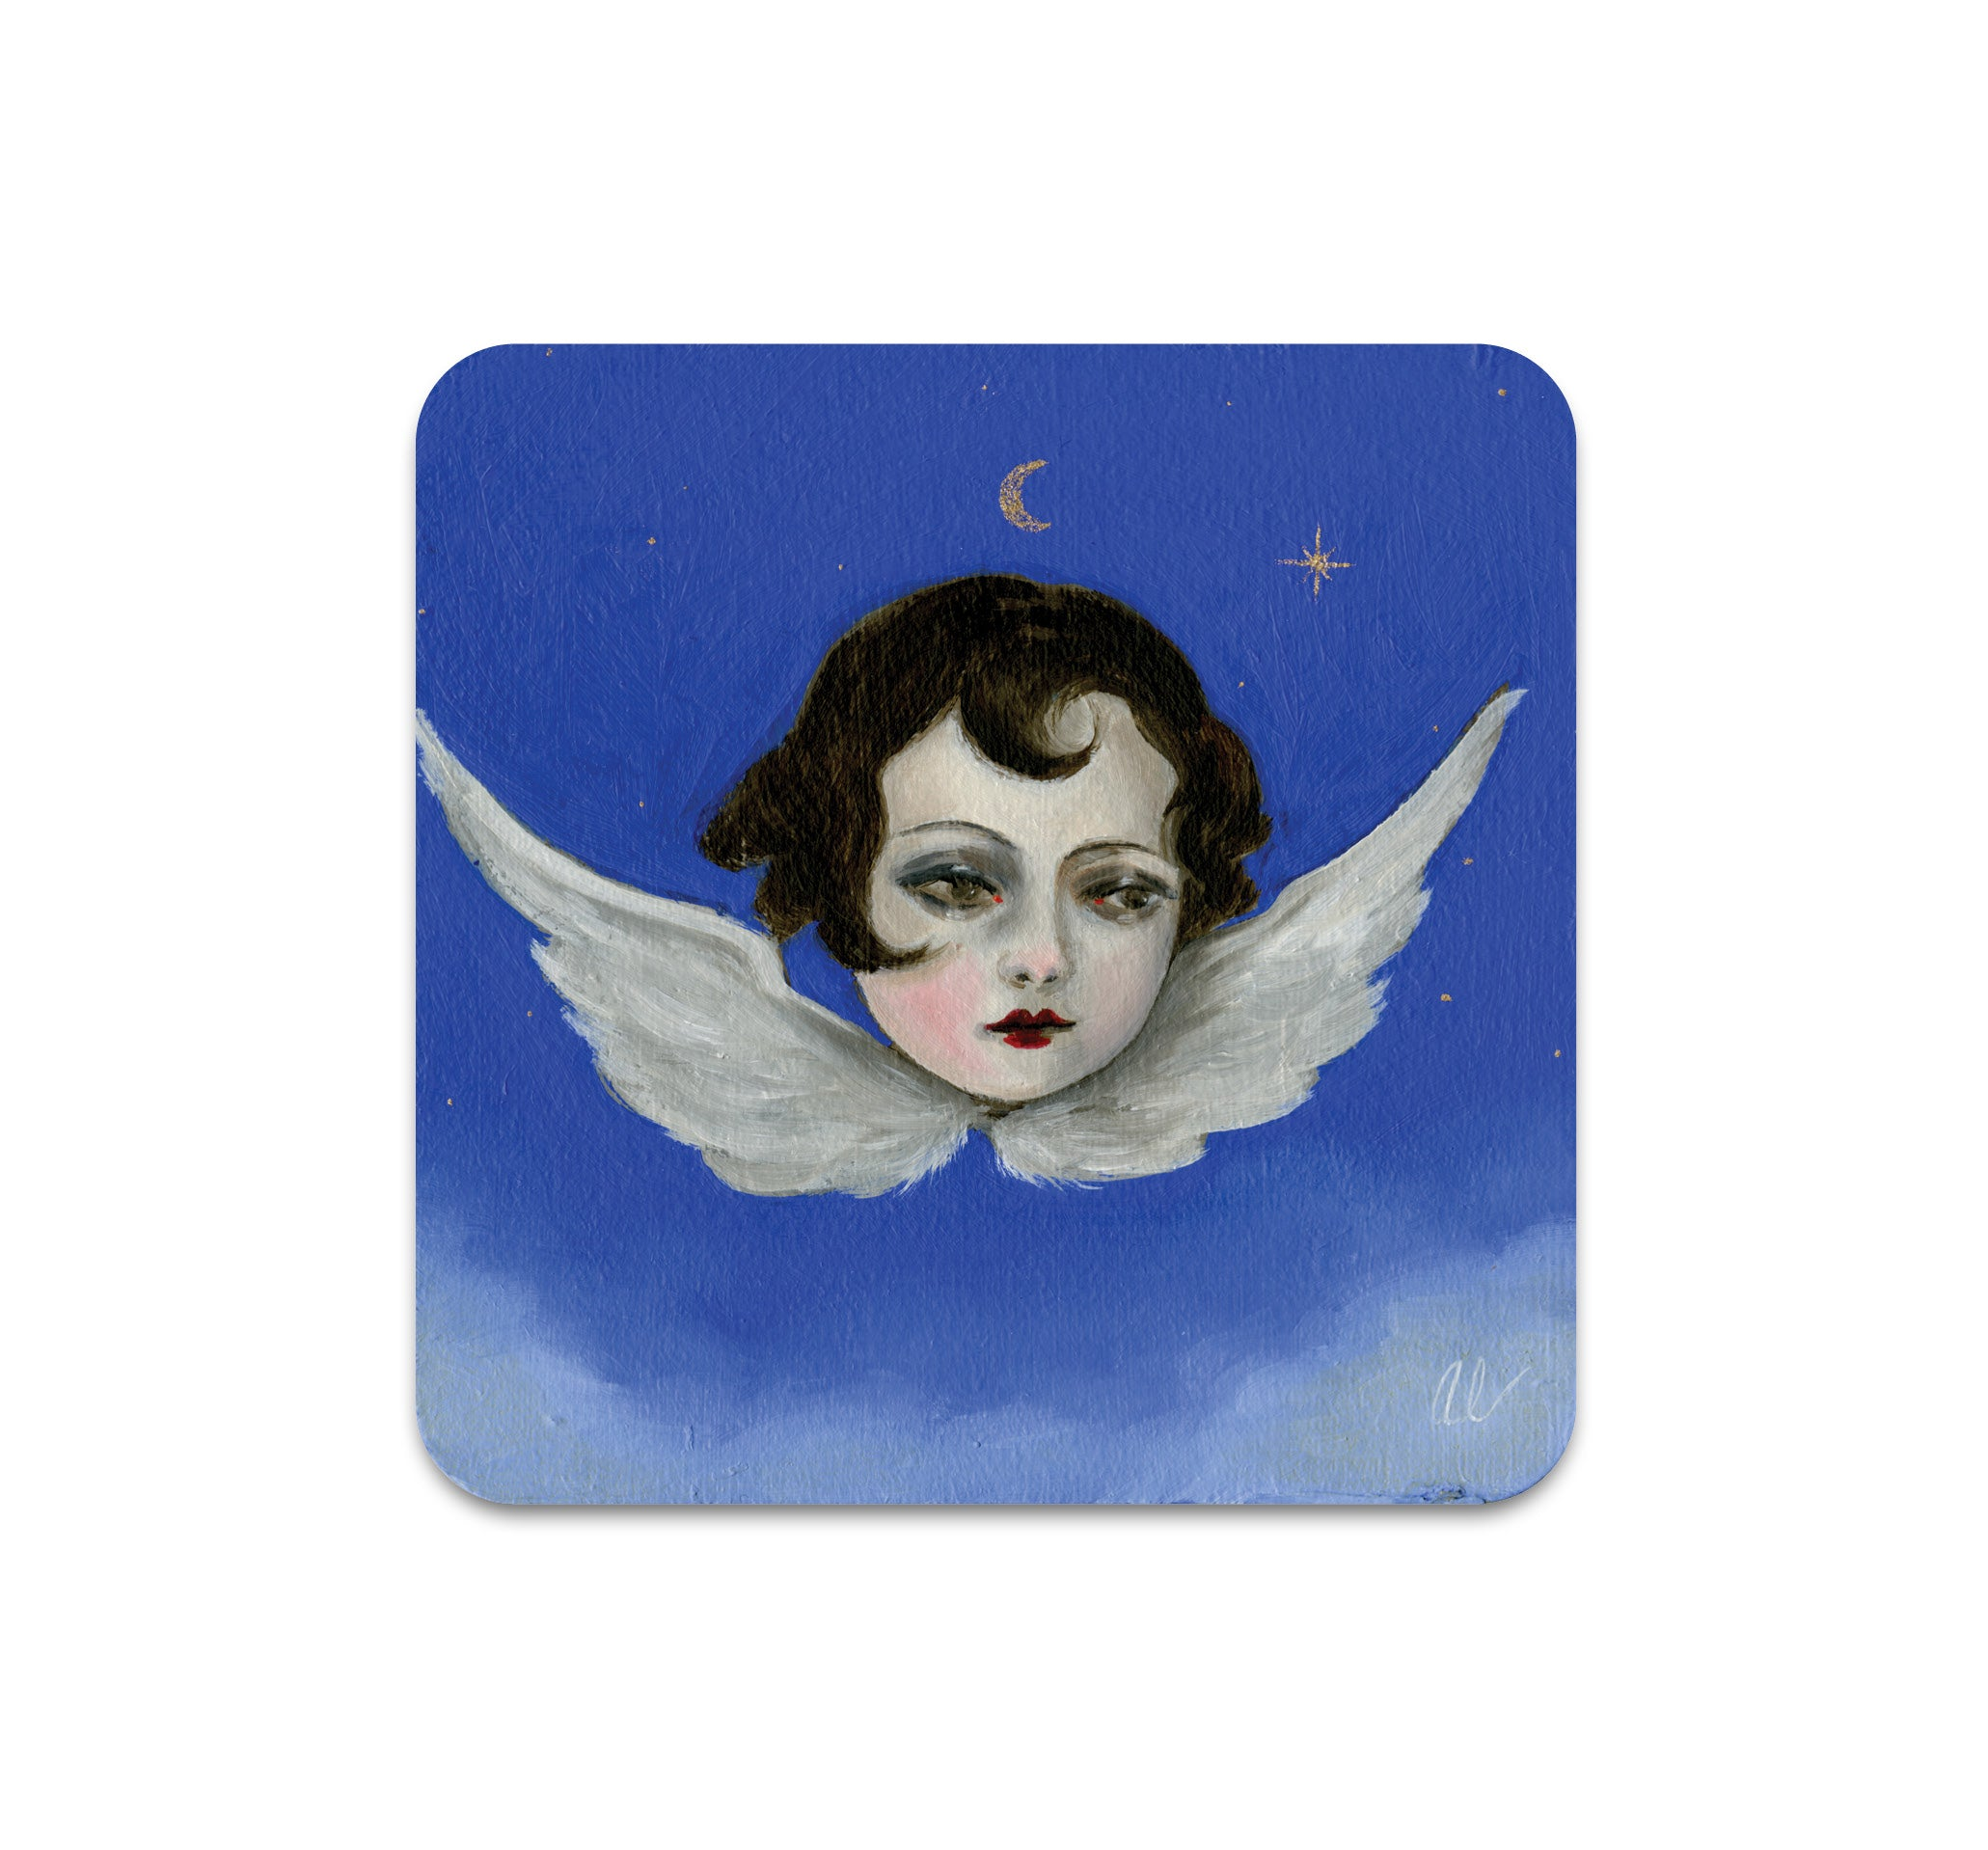 S4 Amy Earles - 1 Coaster